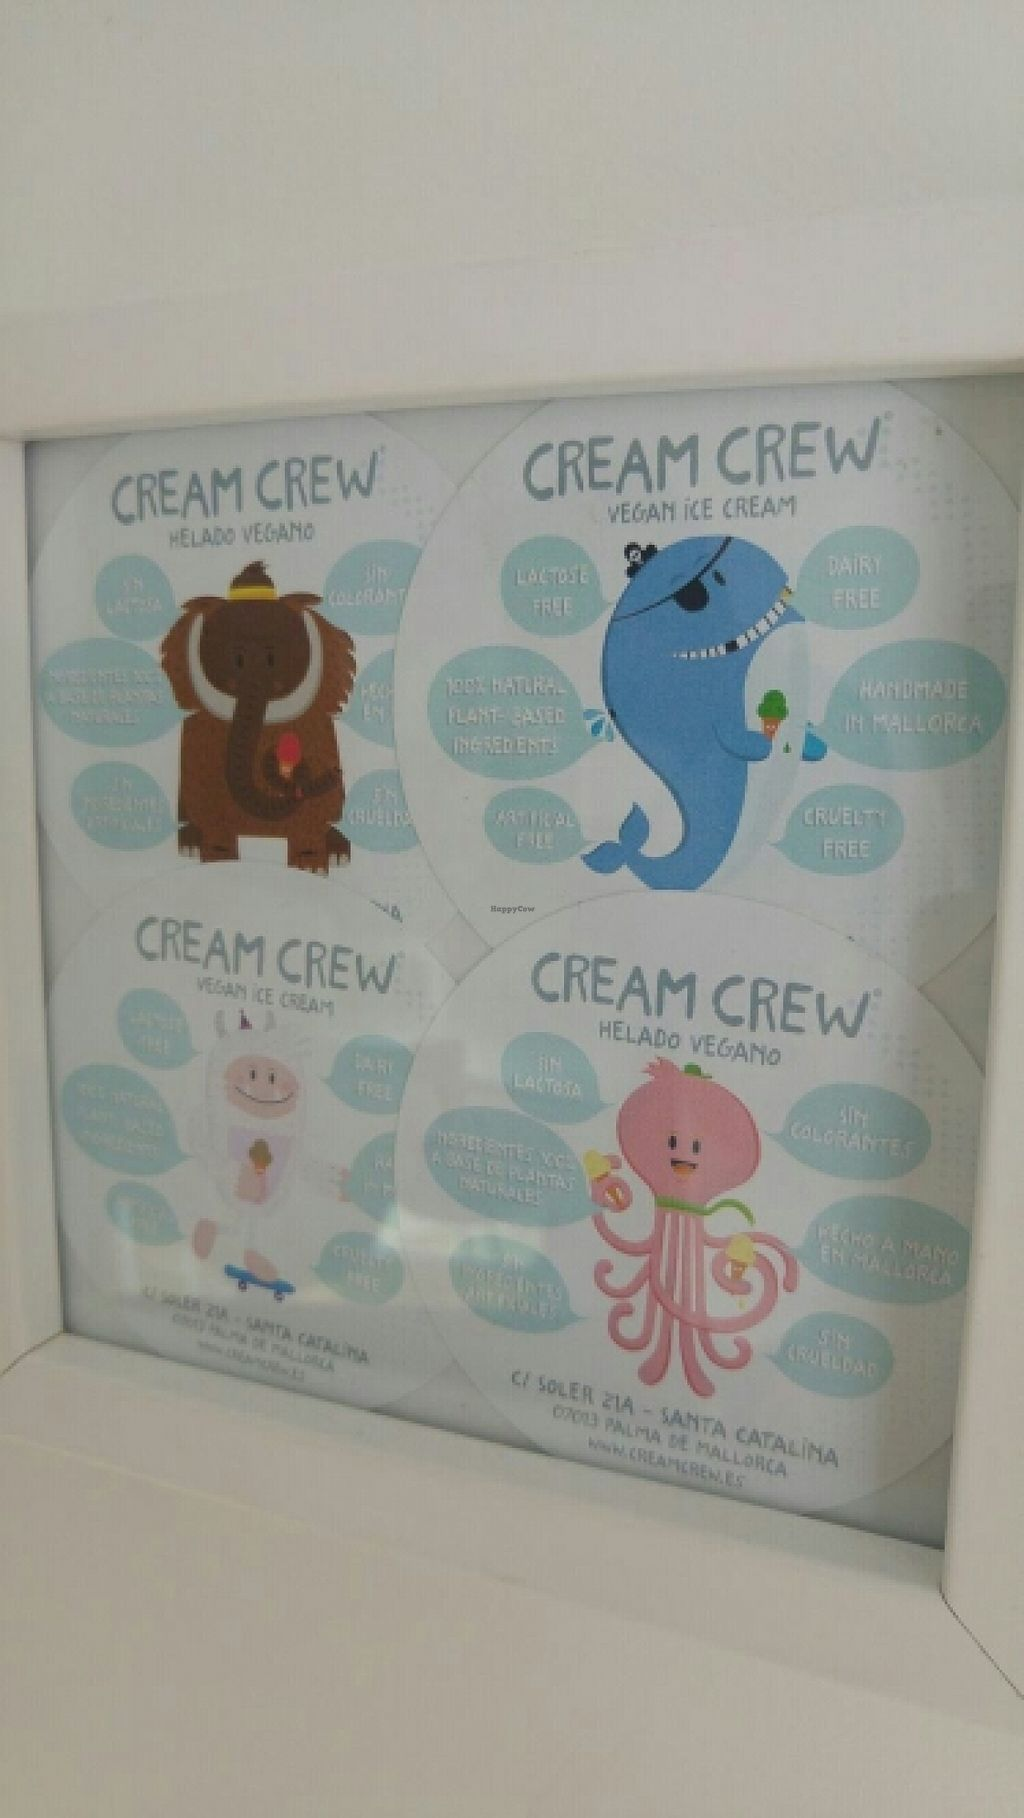 """Photo of Cream Crew  by <a href=""""/members/profile/Melissaj1990"""">Melissaj1990</a> <br/>sign <br/> July 8, 2016  - <a href='/contact/abuse/image/67479/158517'>Report</a>"""